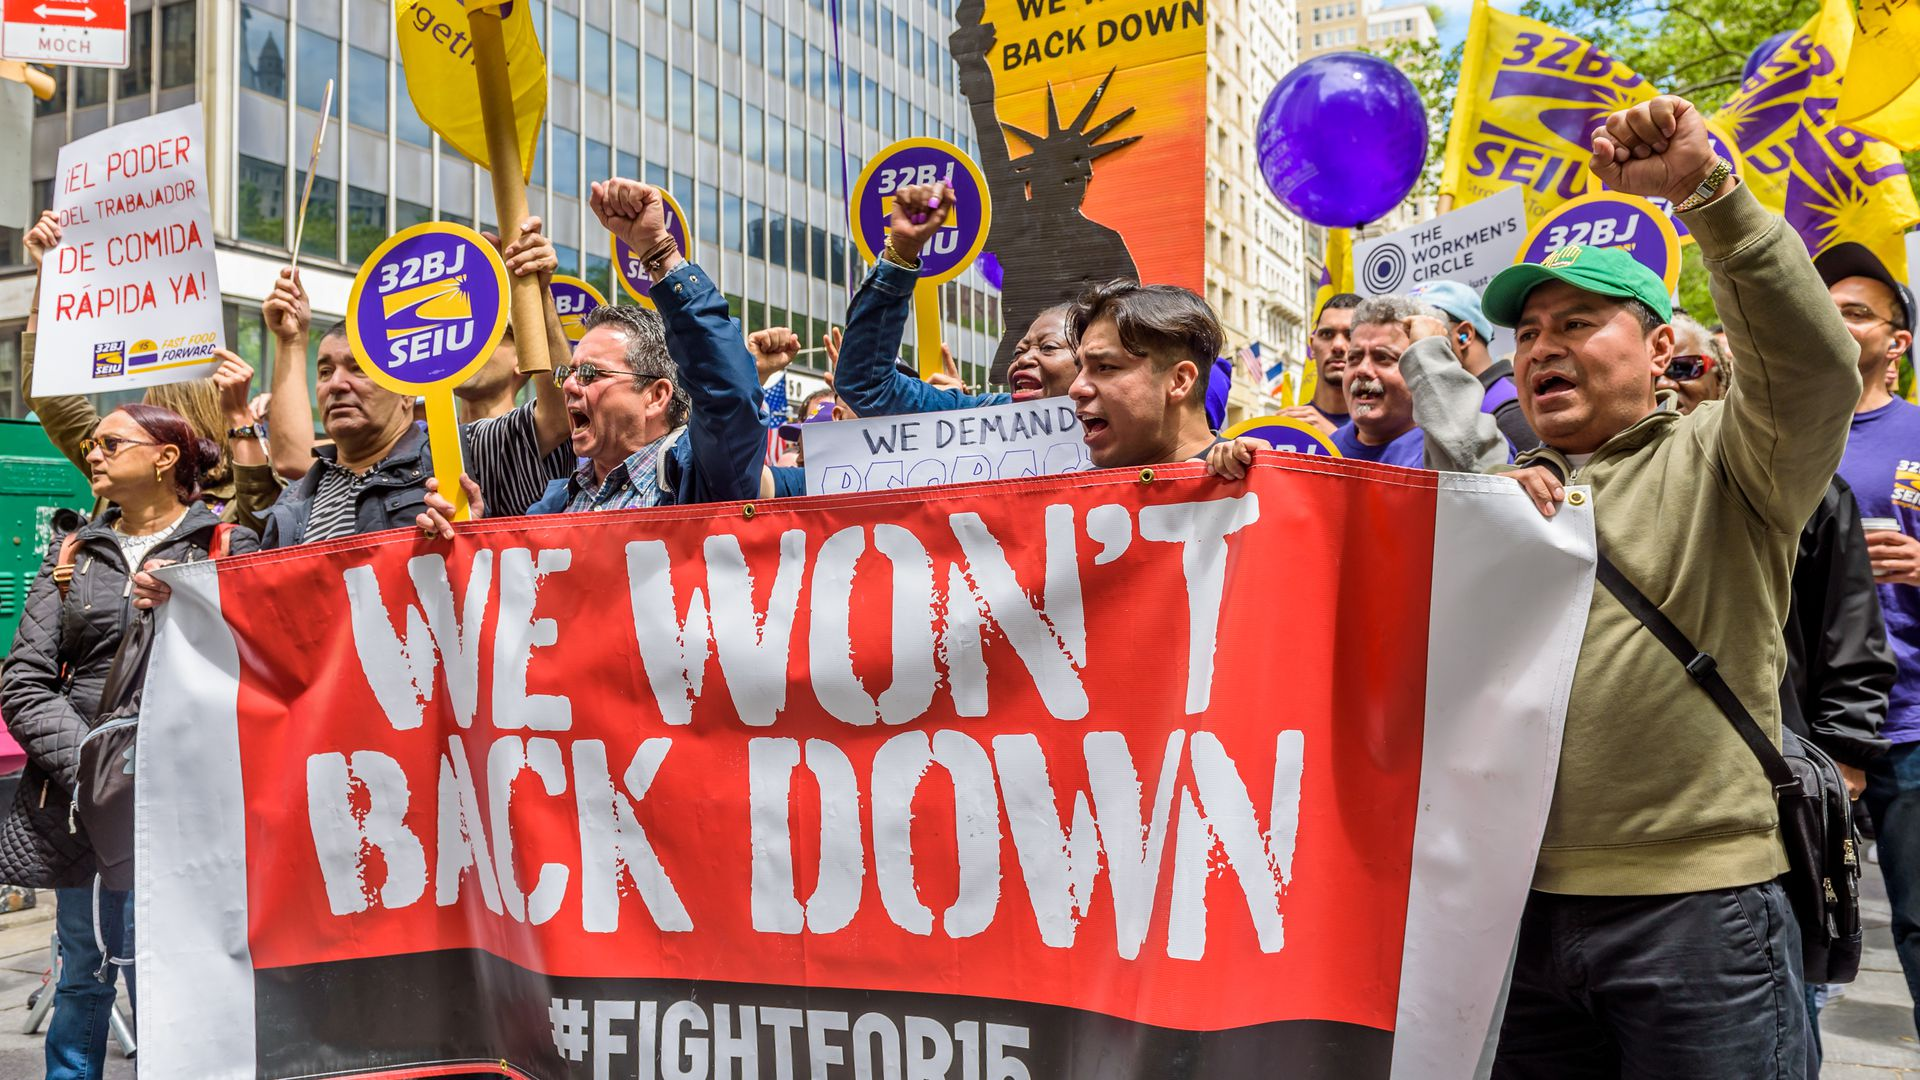 Ahead of an expected New York City Council vote, fast-food workers, cashiers, cooks, delivery people and their supporters held a rally outside New York City Hall.